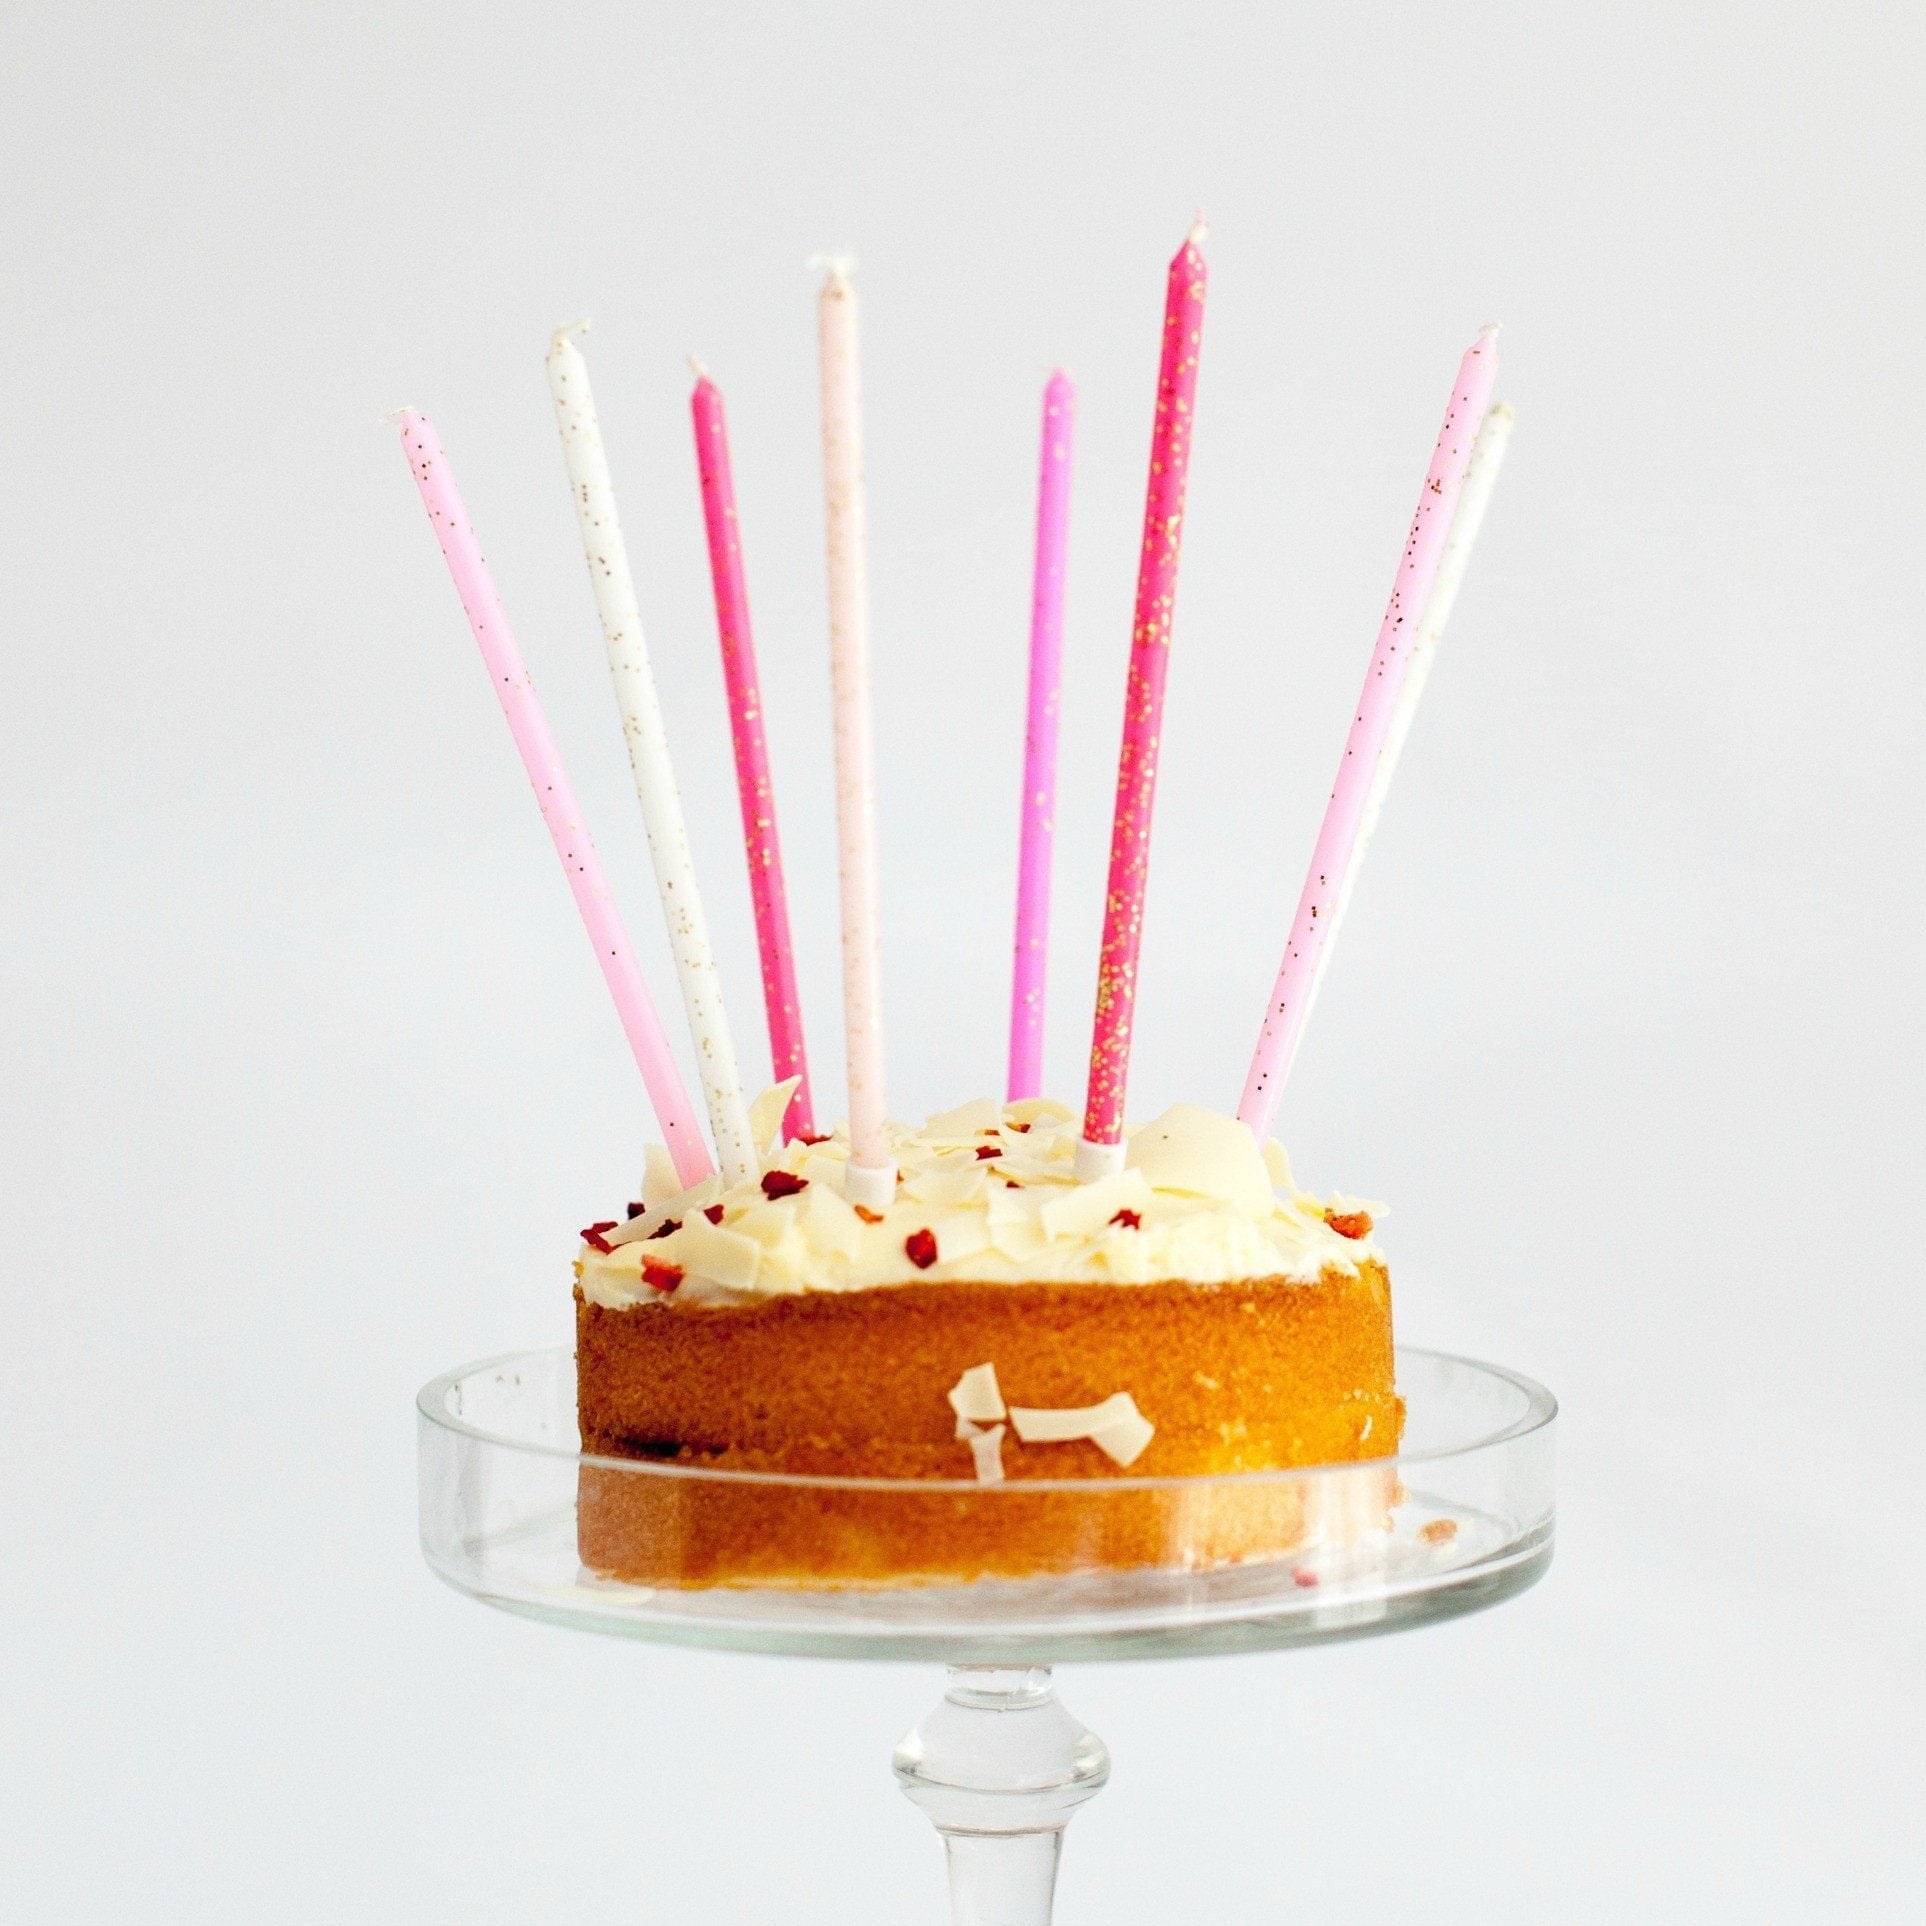 Fine Tall Sparkling Candles Pink Candles For Birthday Cakes Mermeri Funny Birthday Cards Online Aboleapandamsfinfo